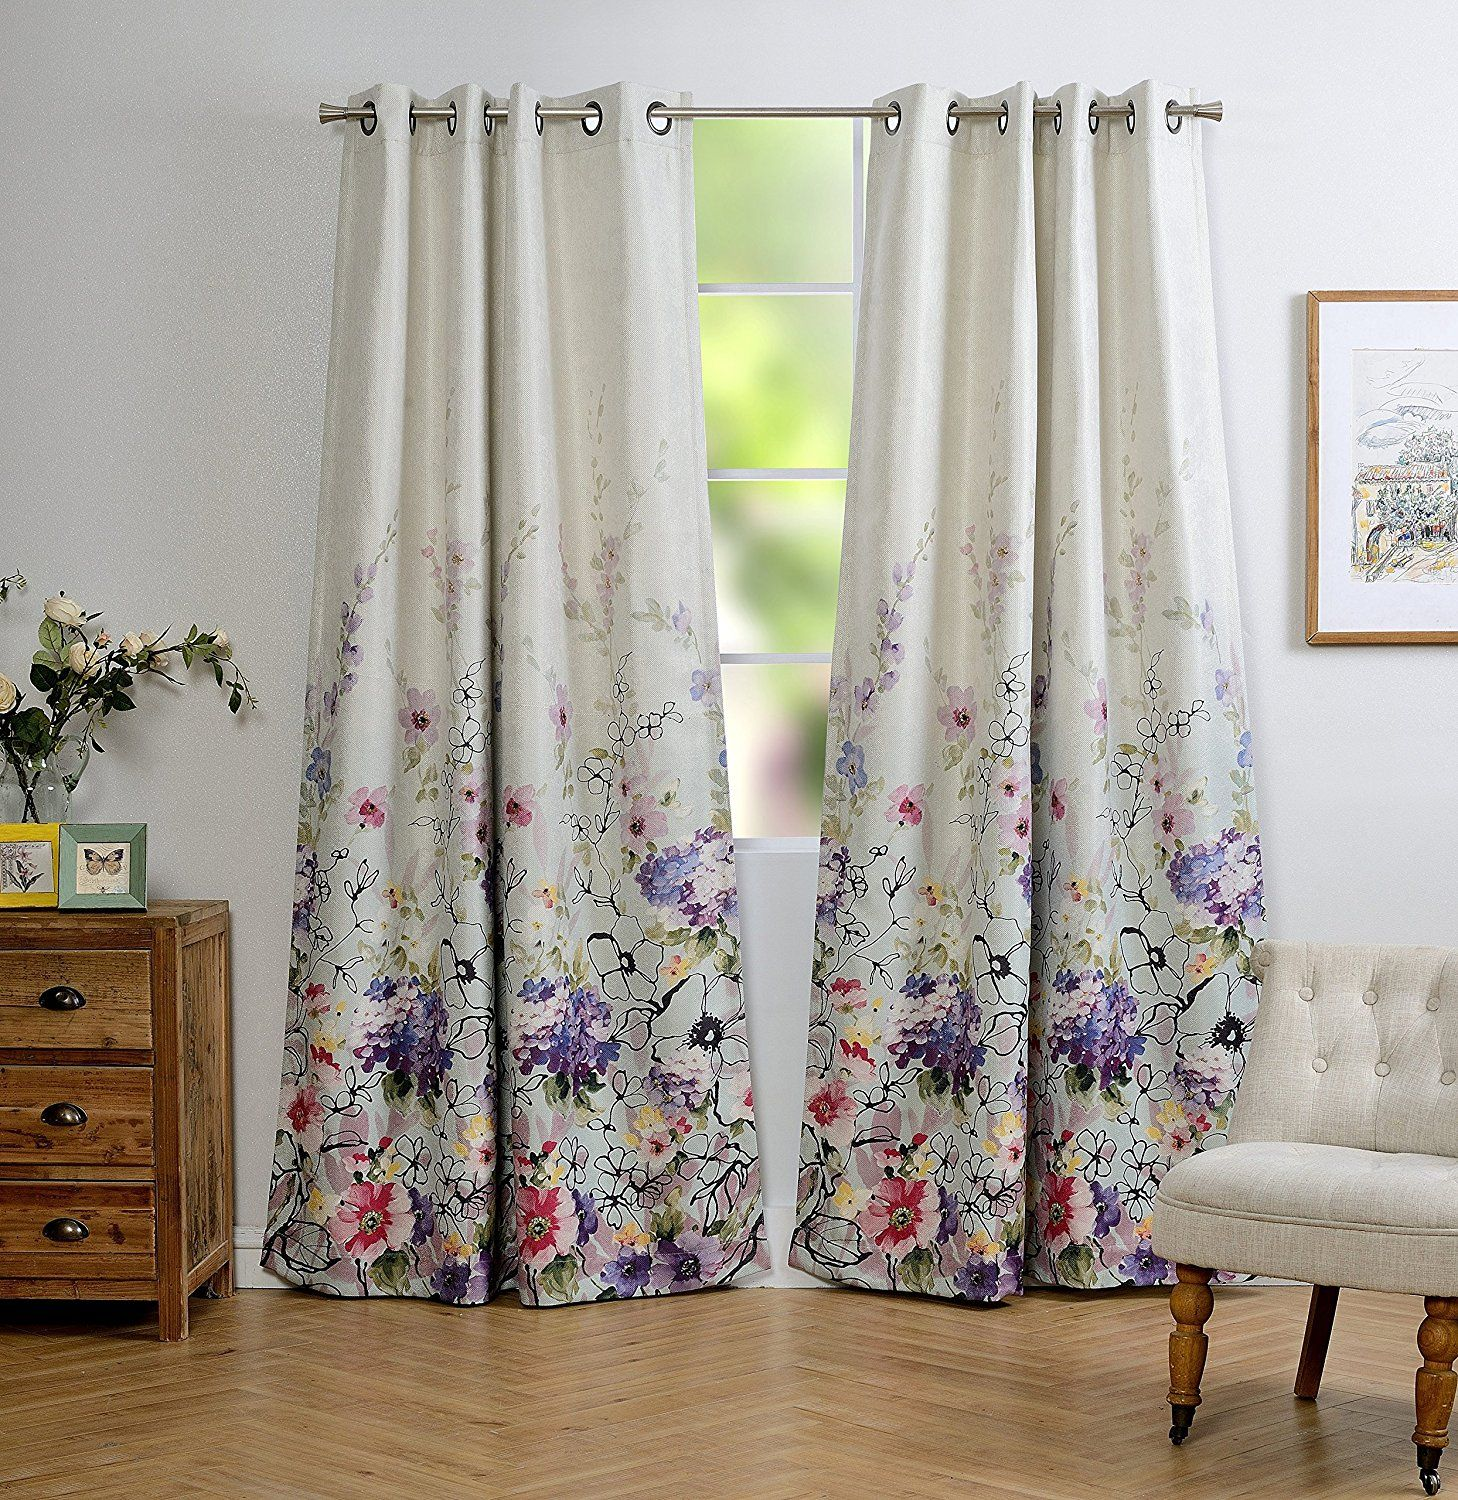 top curtains amazon buying it best the fashion view typically home reviewed be every price curtain hours guide current on different blackout reviews insulated may updated thermal